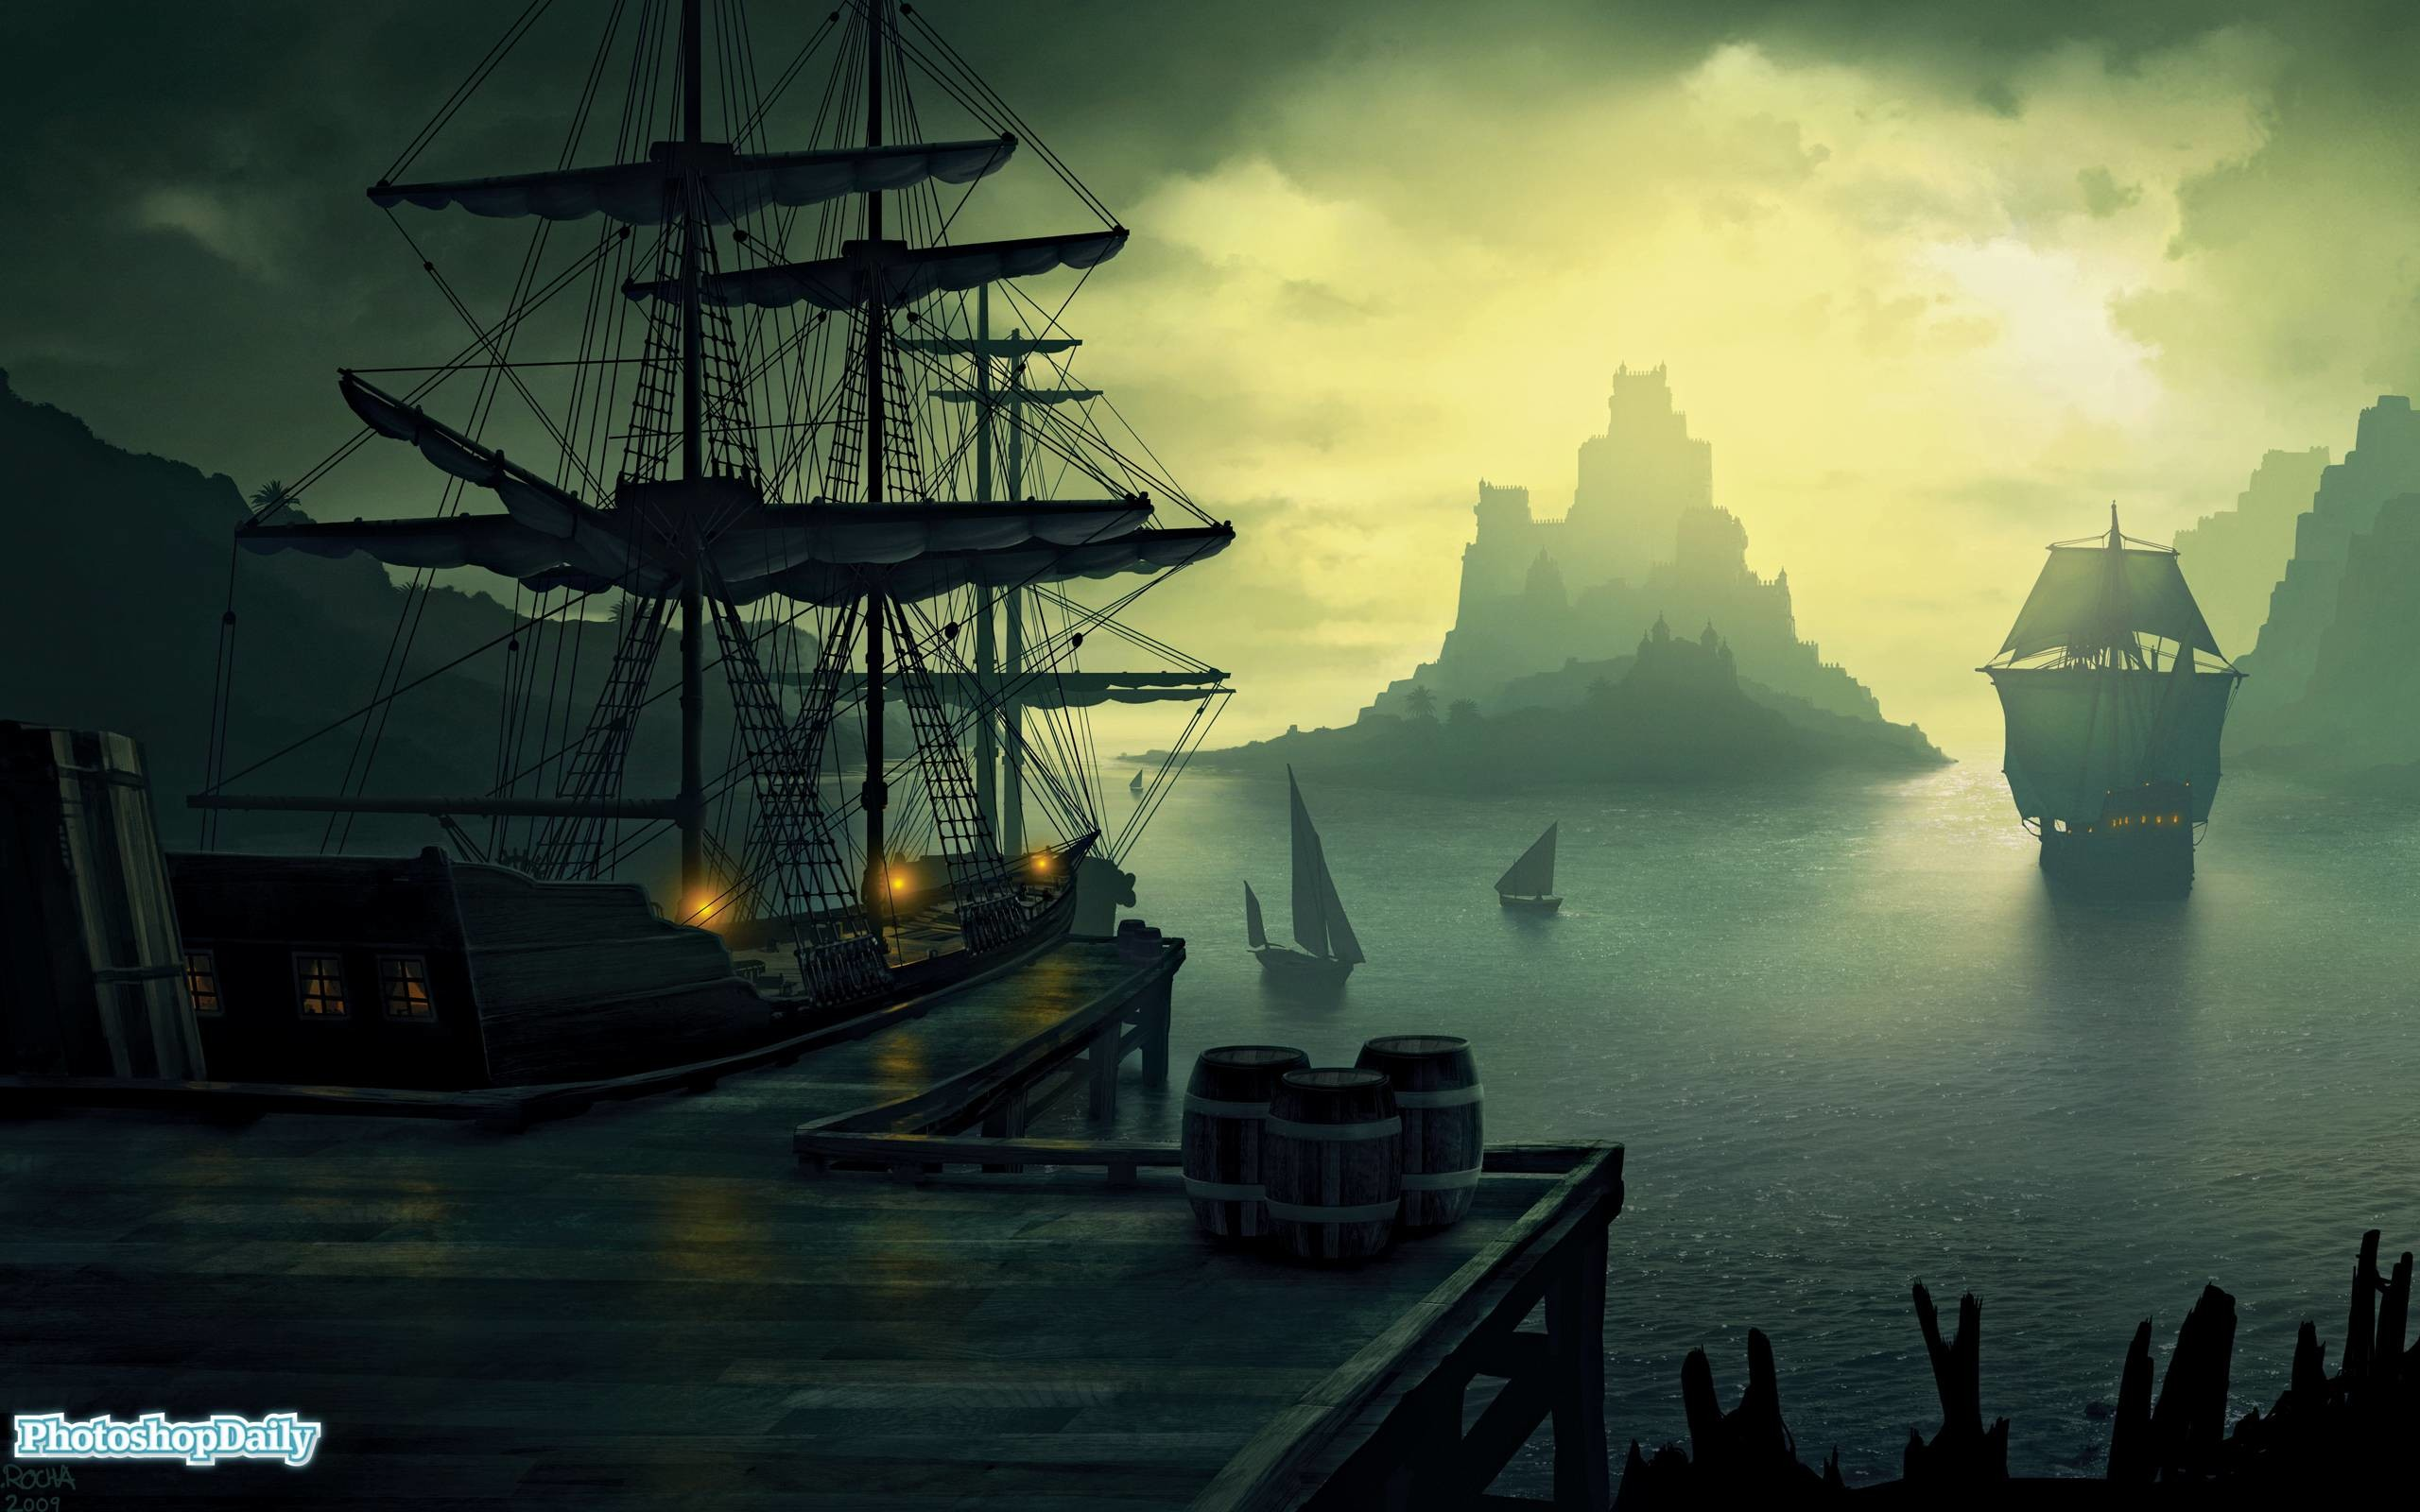 75 Pirate Ship Wallpapers on WallpaperPlay 2560x1600